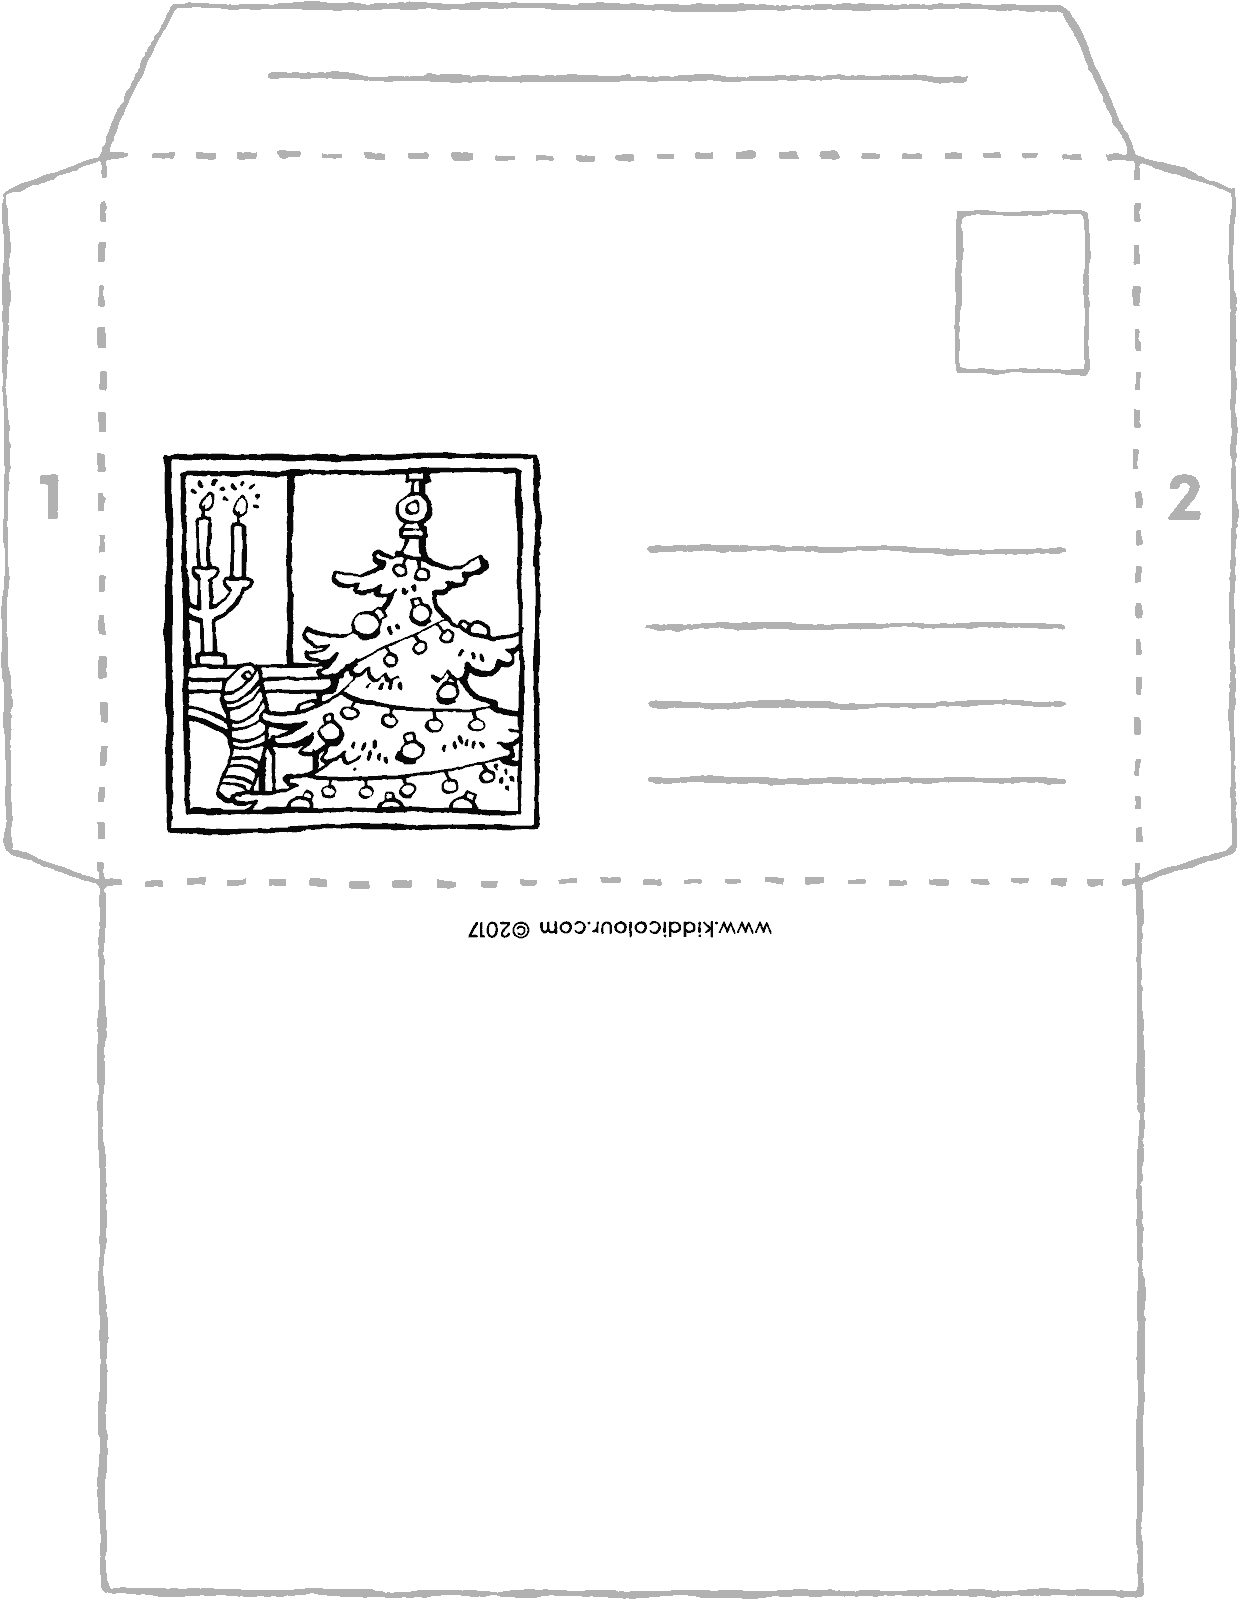 Christmas envelope colouring page drawing picture 01V